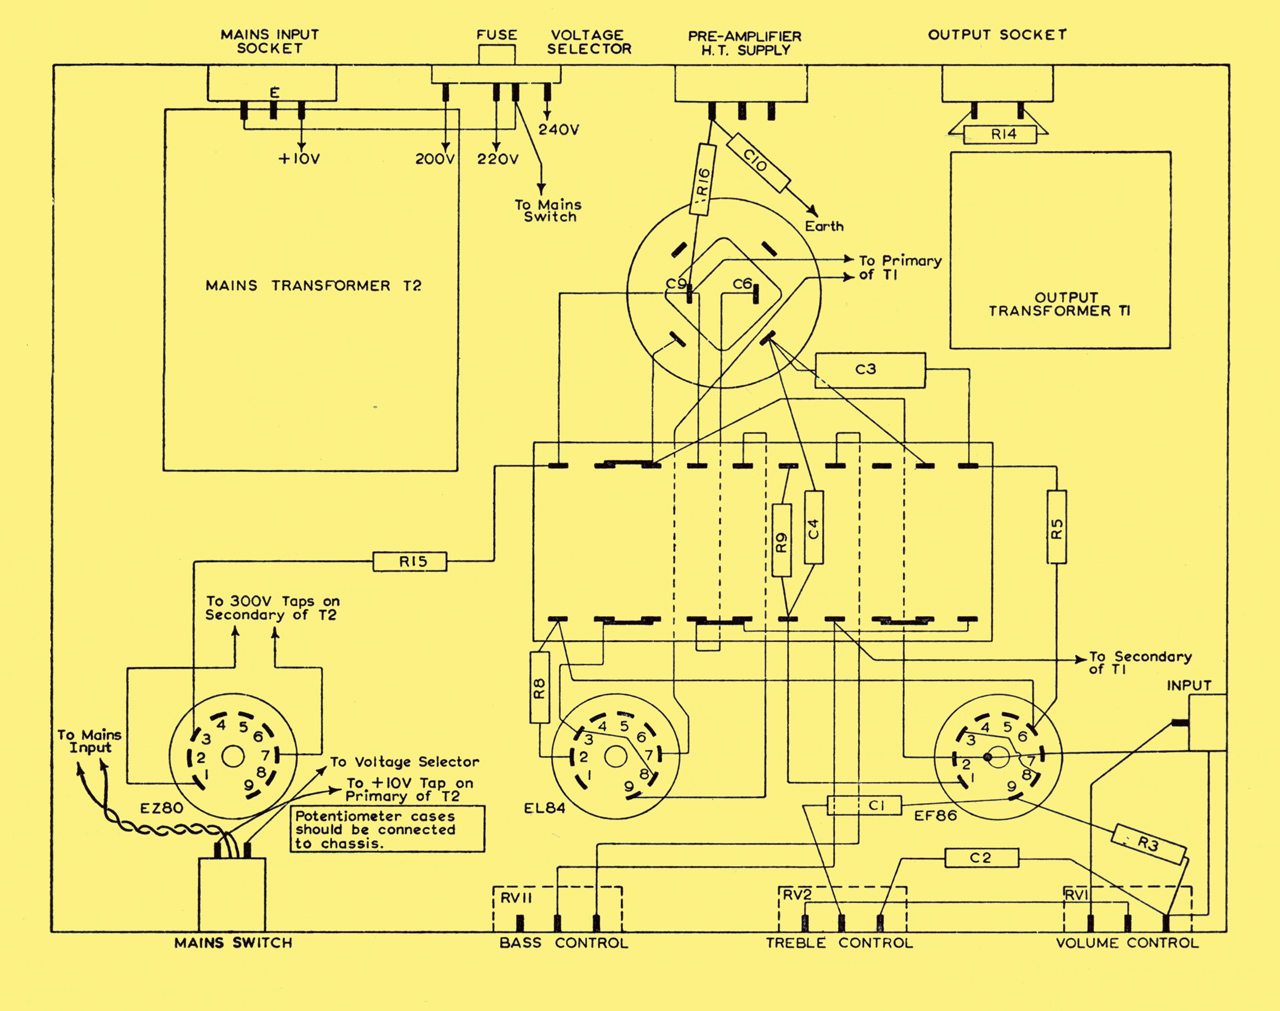 Mullard 3 Three Watt Amplifier Diagram Also Headset Lifier Test Circuit Simplified Schematic The Chassis Can Be Cut From One Piece Of 16 Swg Aluminium Sheet 12 In Long And 10 Wide A Bottom Cover Plate To Is Not Necessary